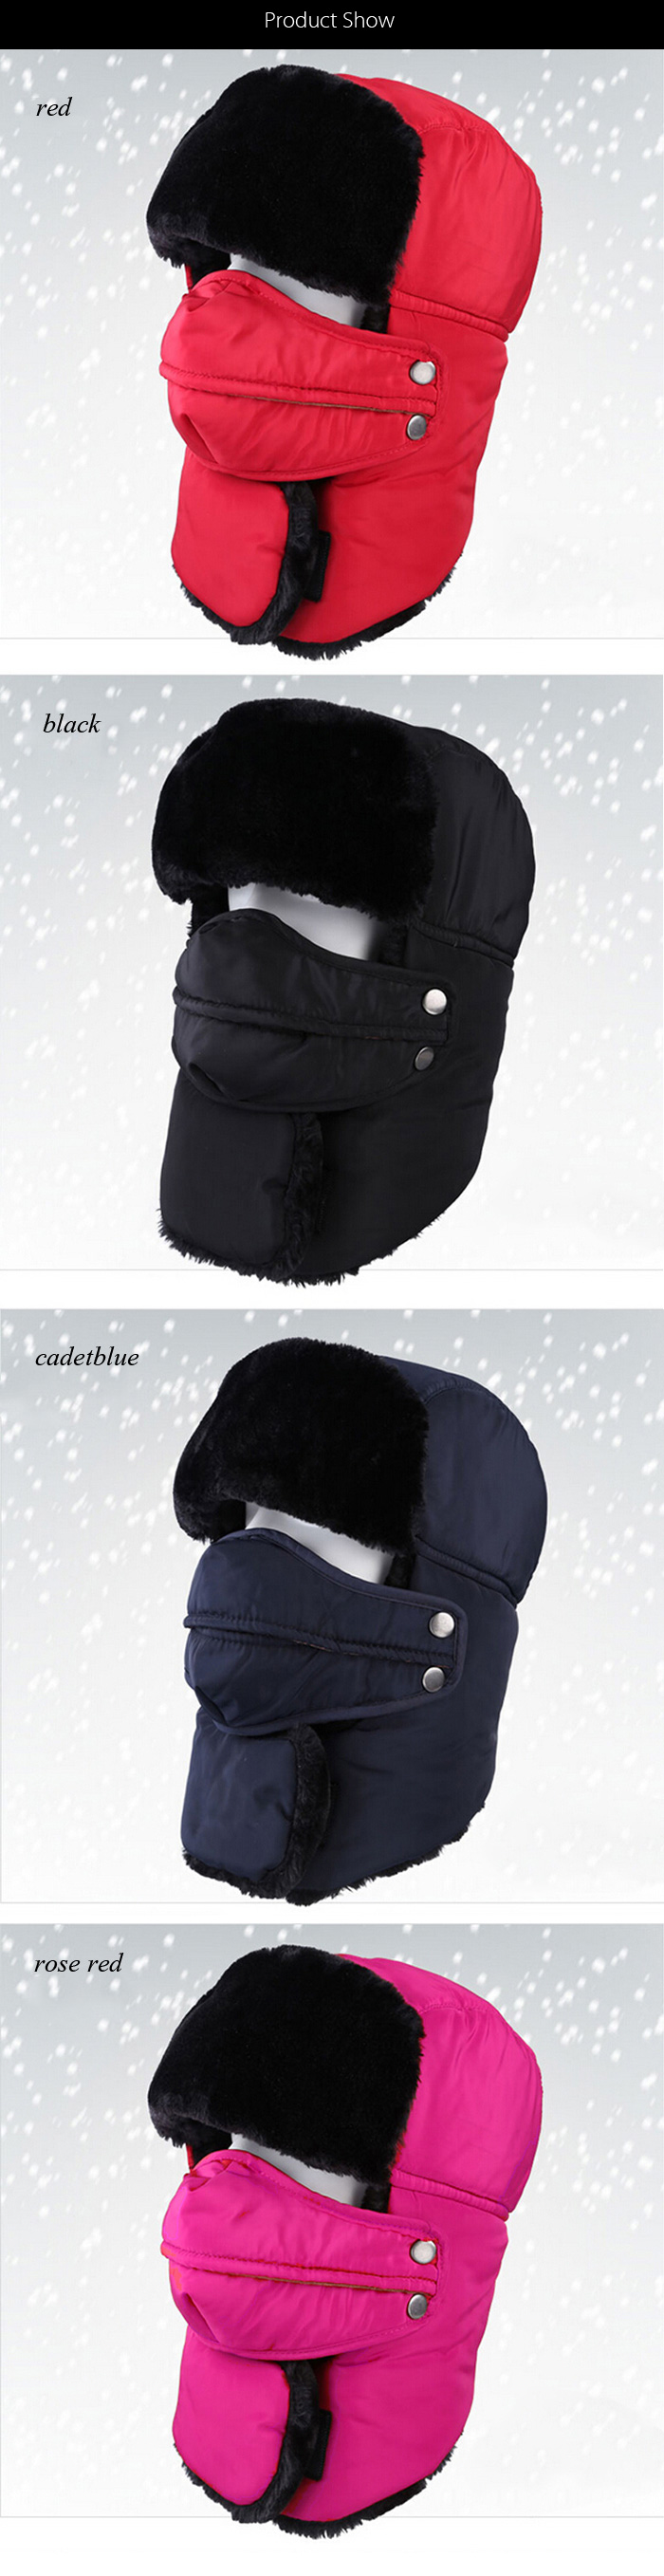 Winter Warm Leifeng Hat with Face Mask Neck Warmer Earmuffs